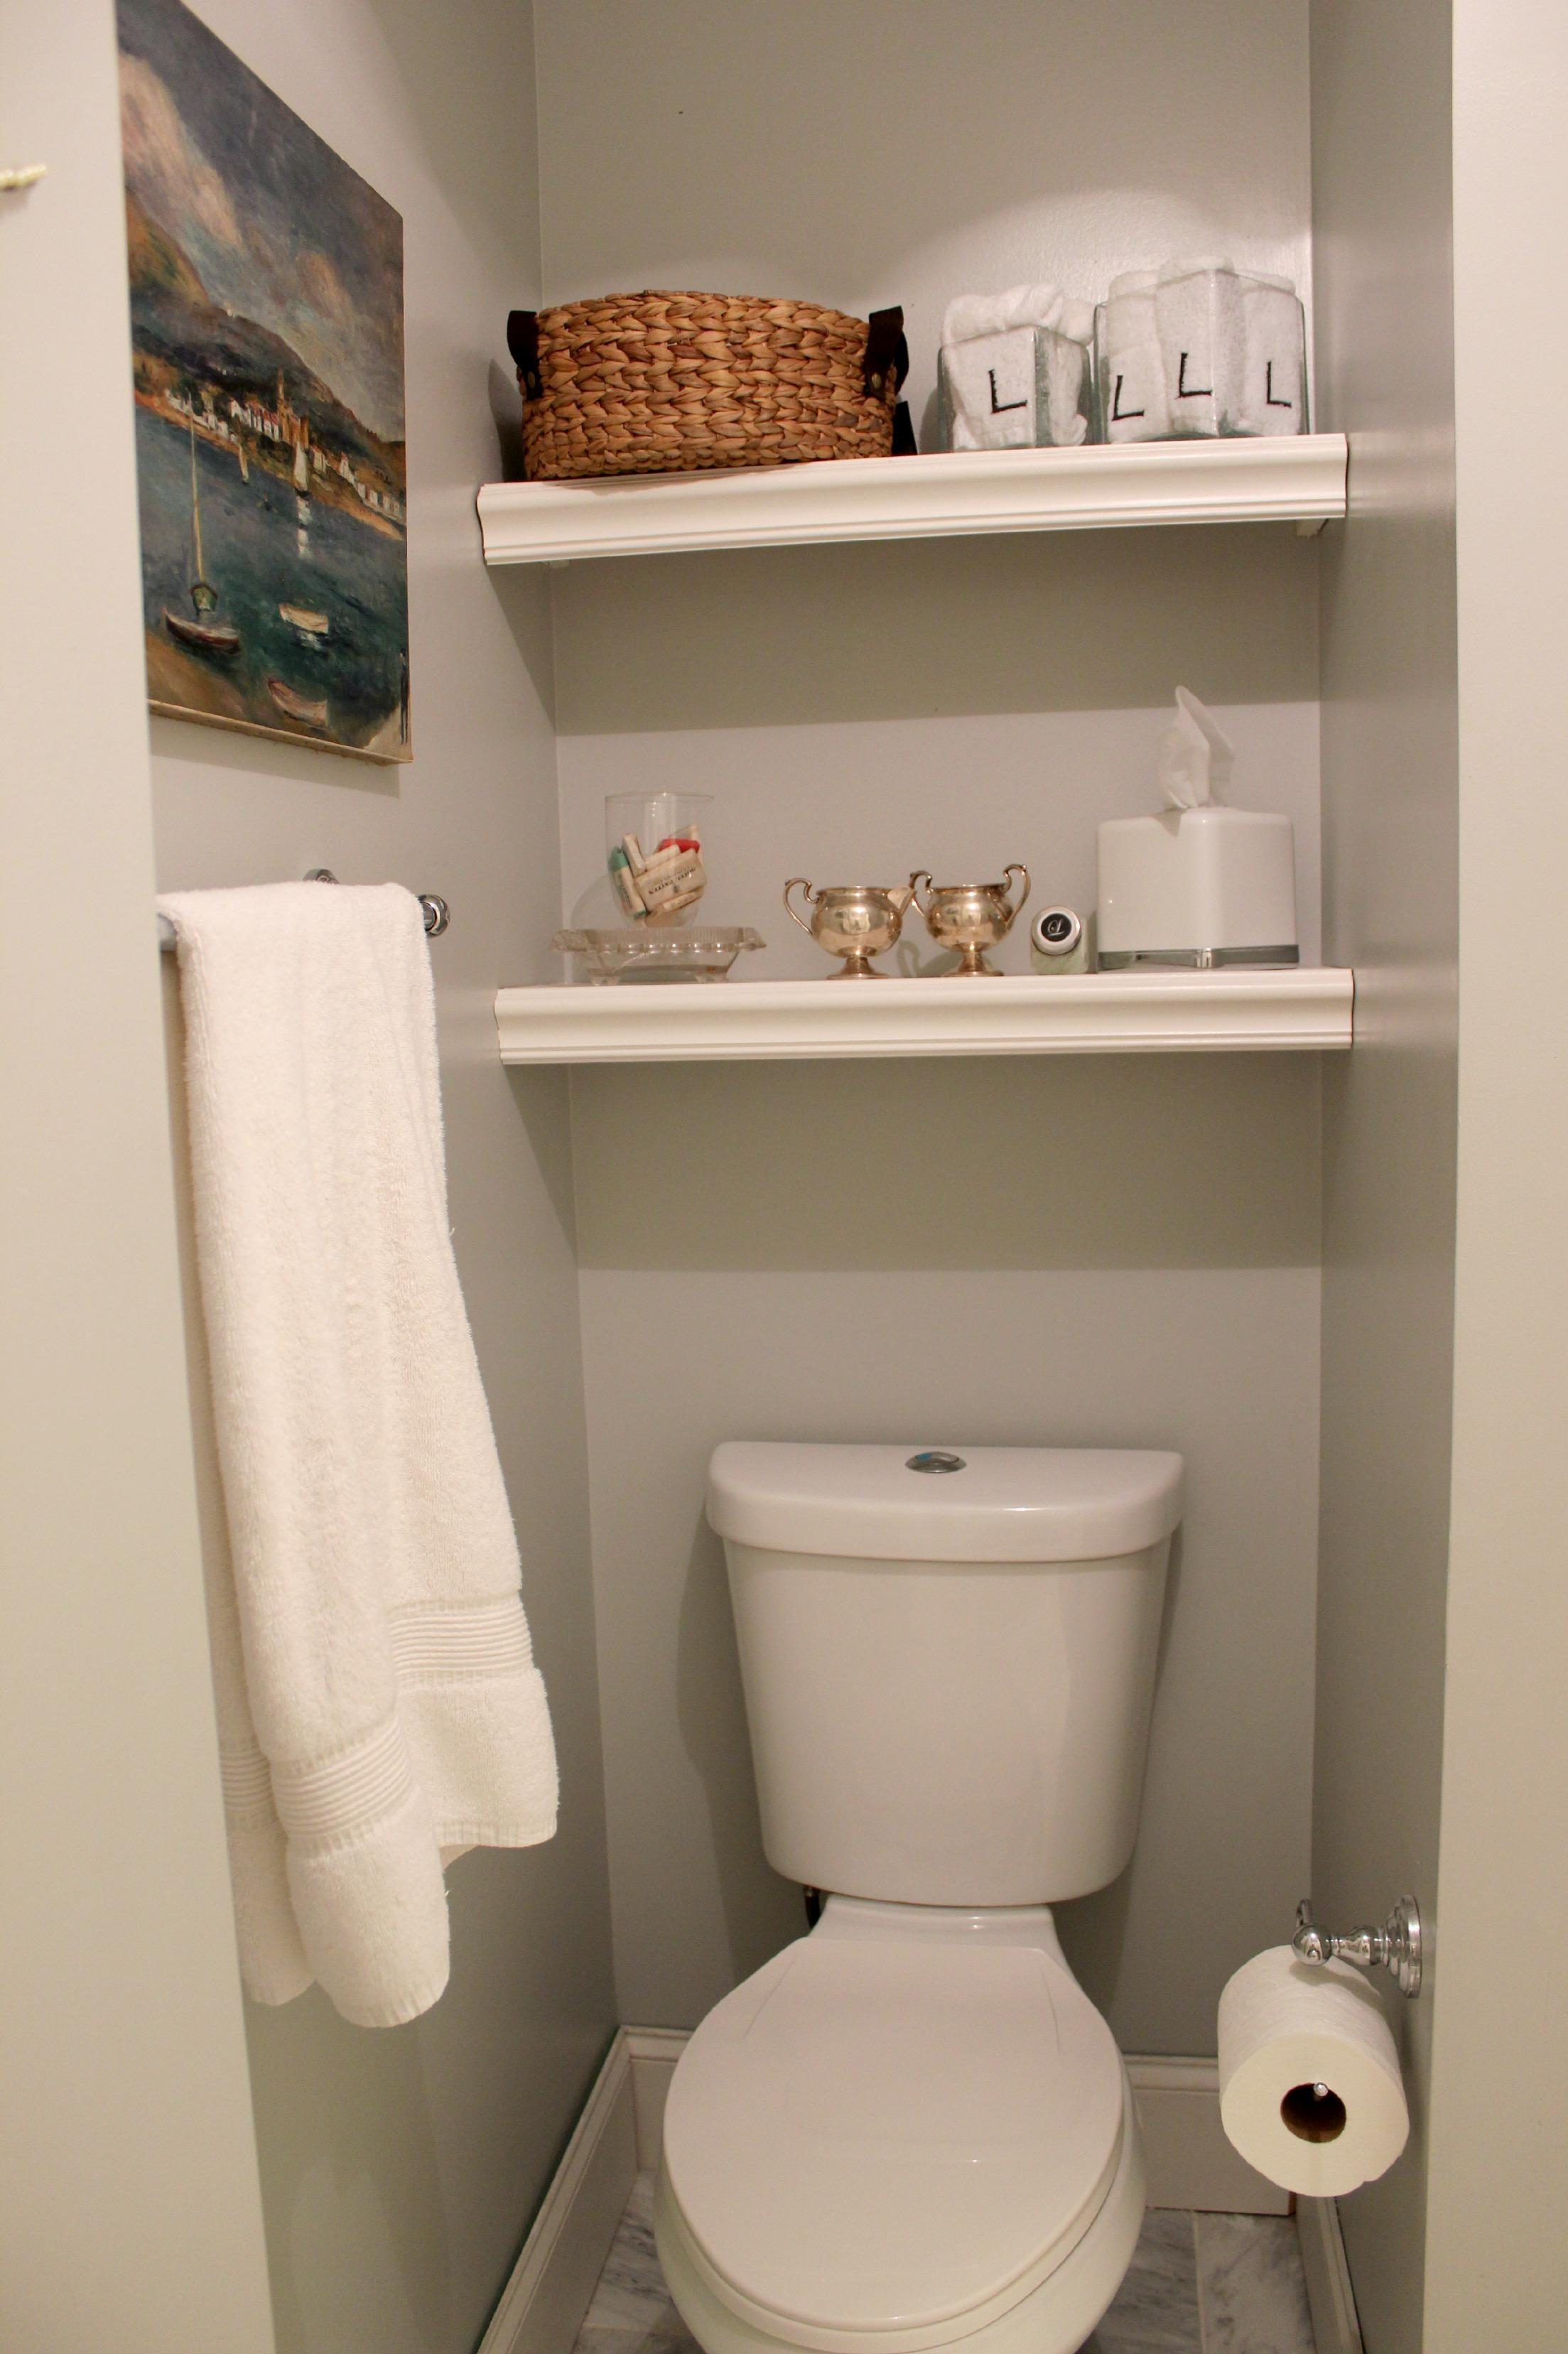 Small Bathroom Space Ideas HomesFeed - Bathroom towel basket ideas for small bathroom ideas